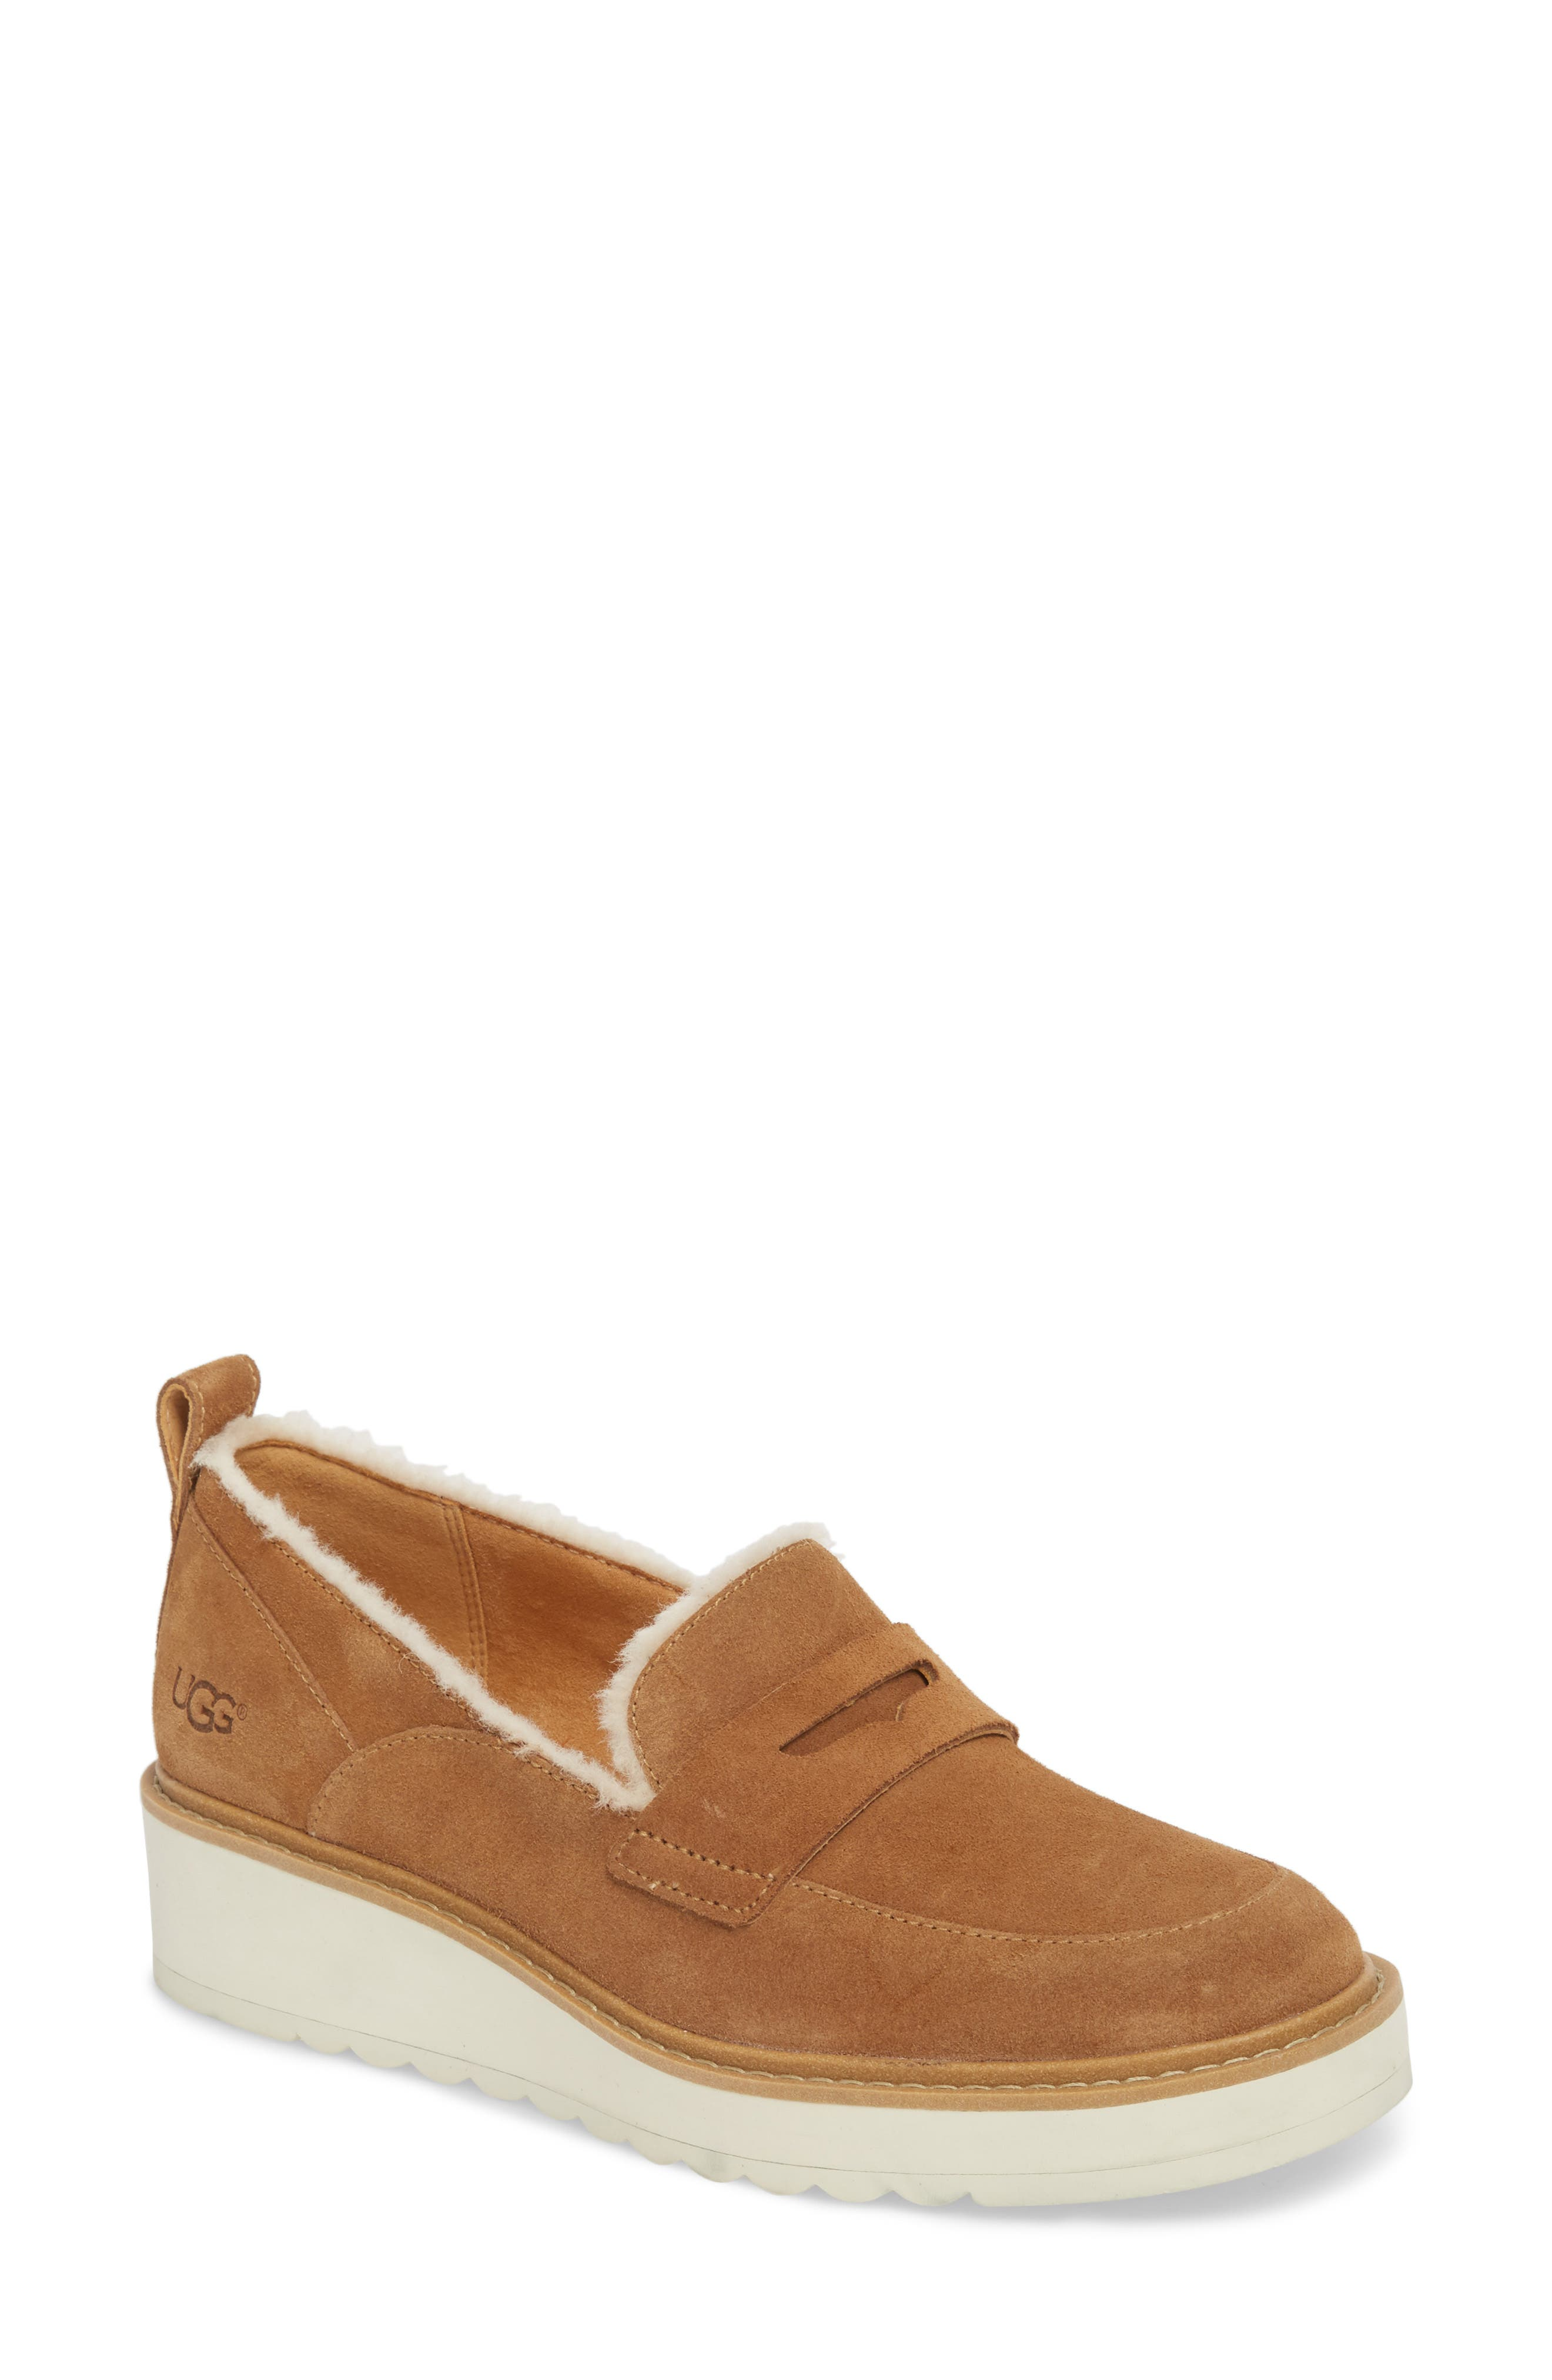 Ugg Atwater Spill Seam Wedge Loafer, Brown